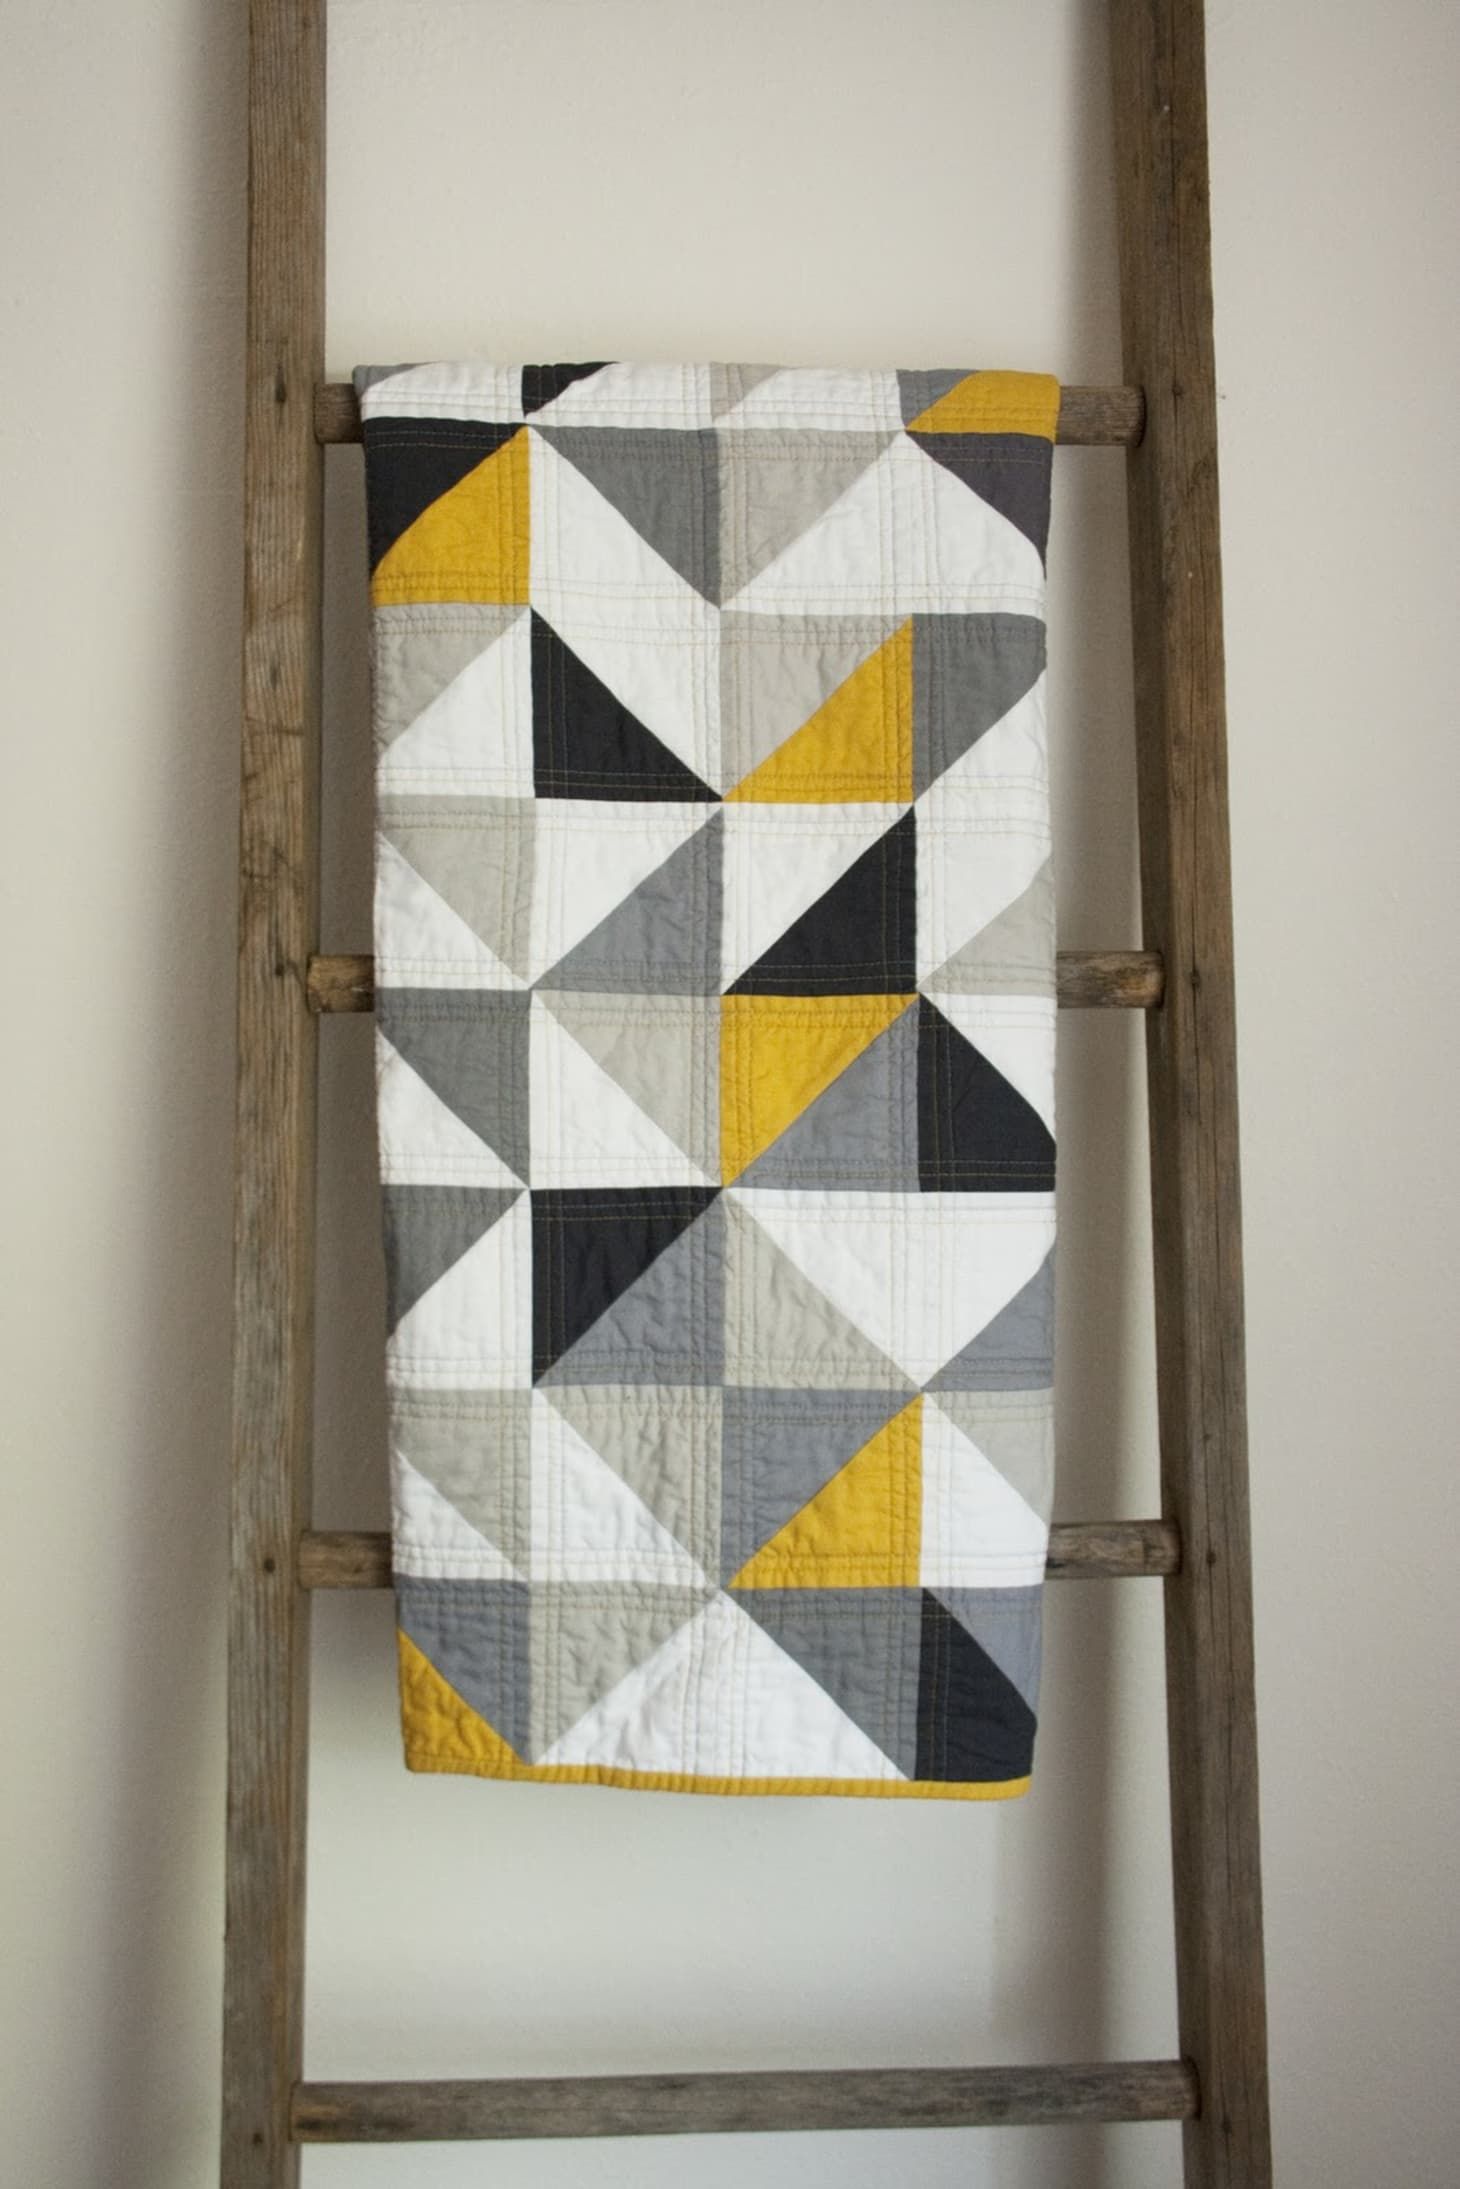 Quilt Hangers, Racks and Other Creative Display Ideas